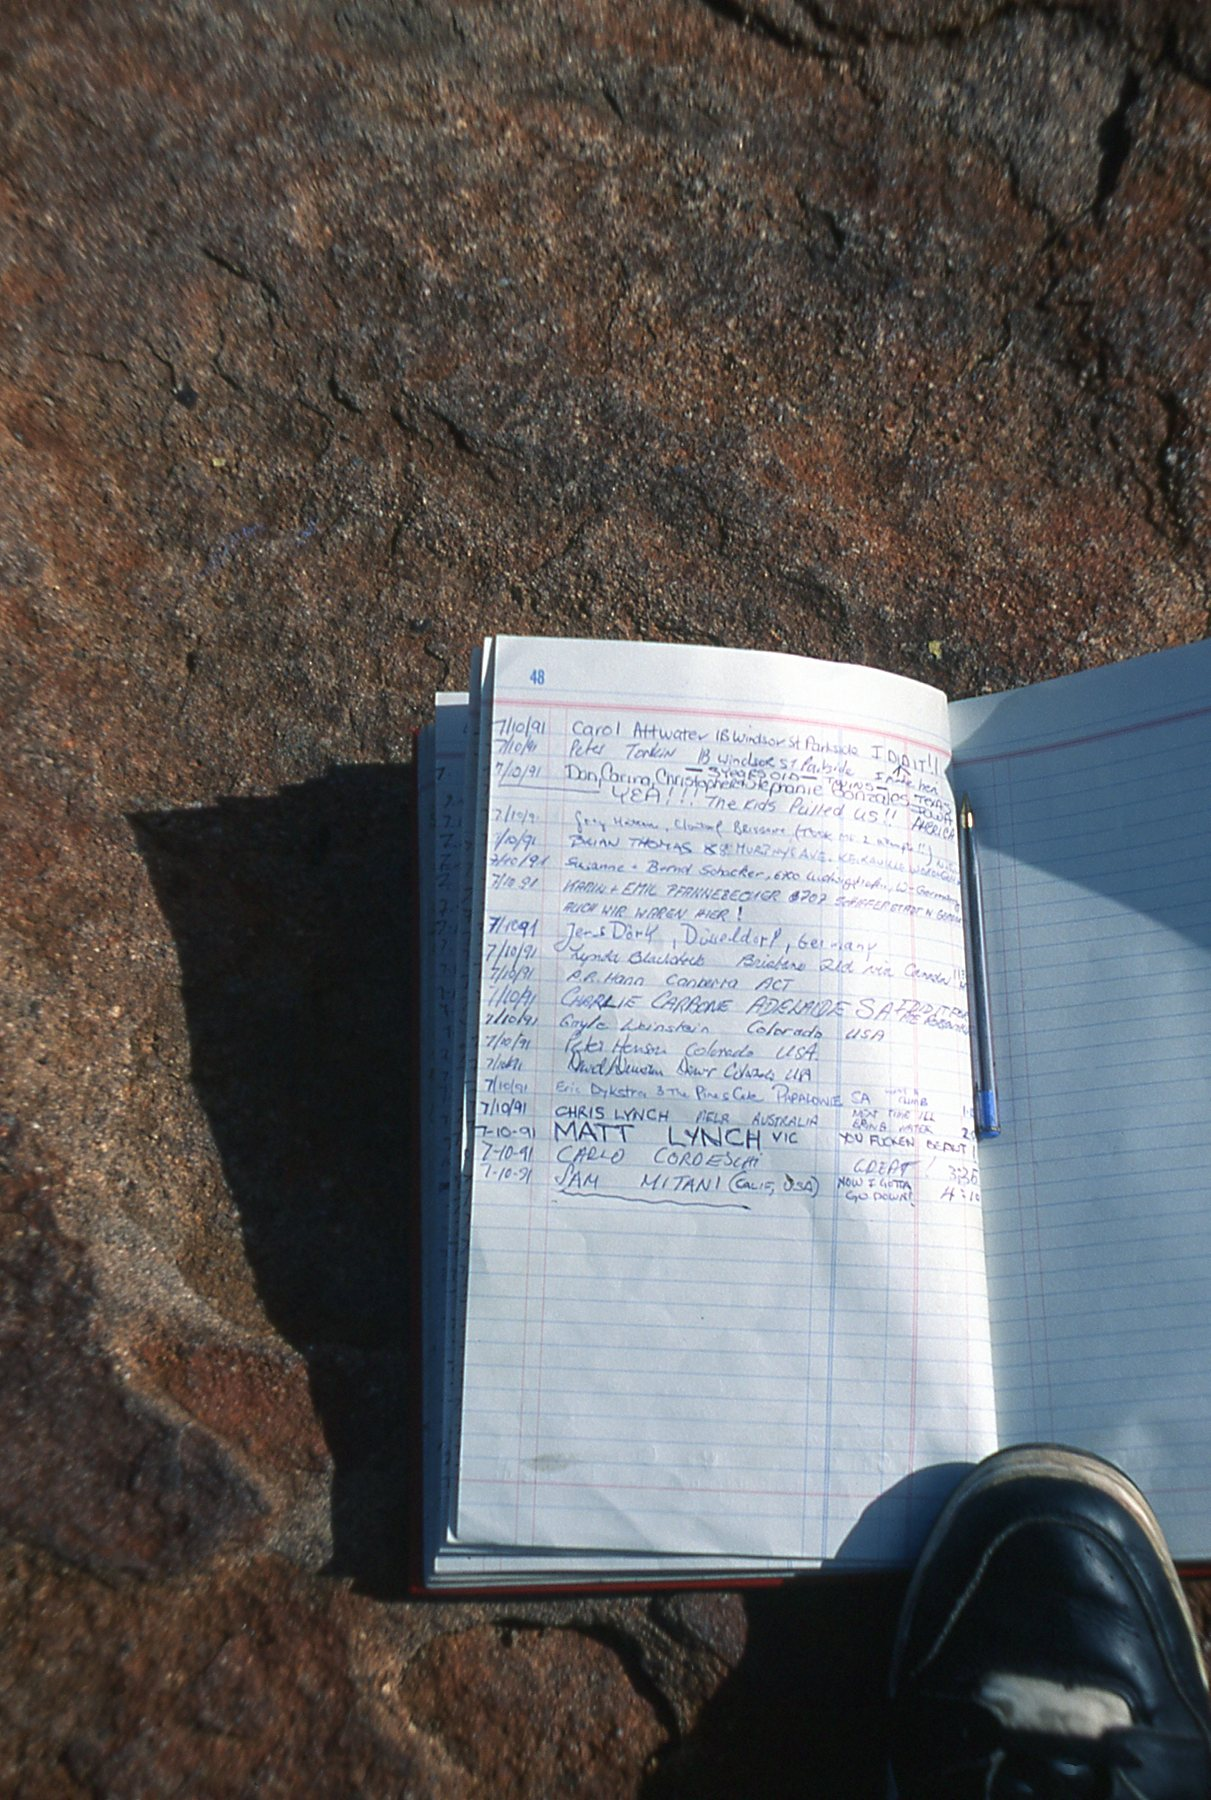 Leaving proof I climbed Ayers Rock